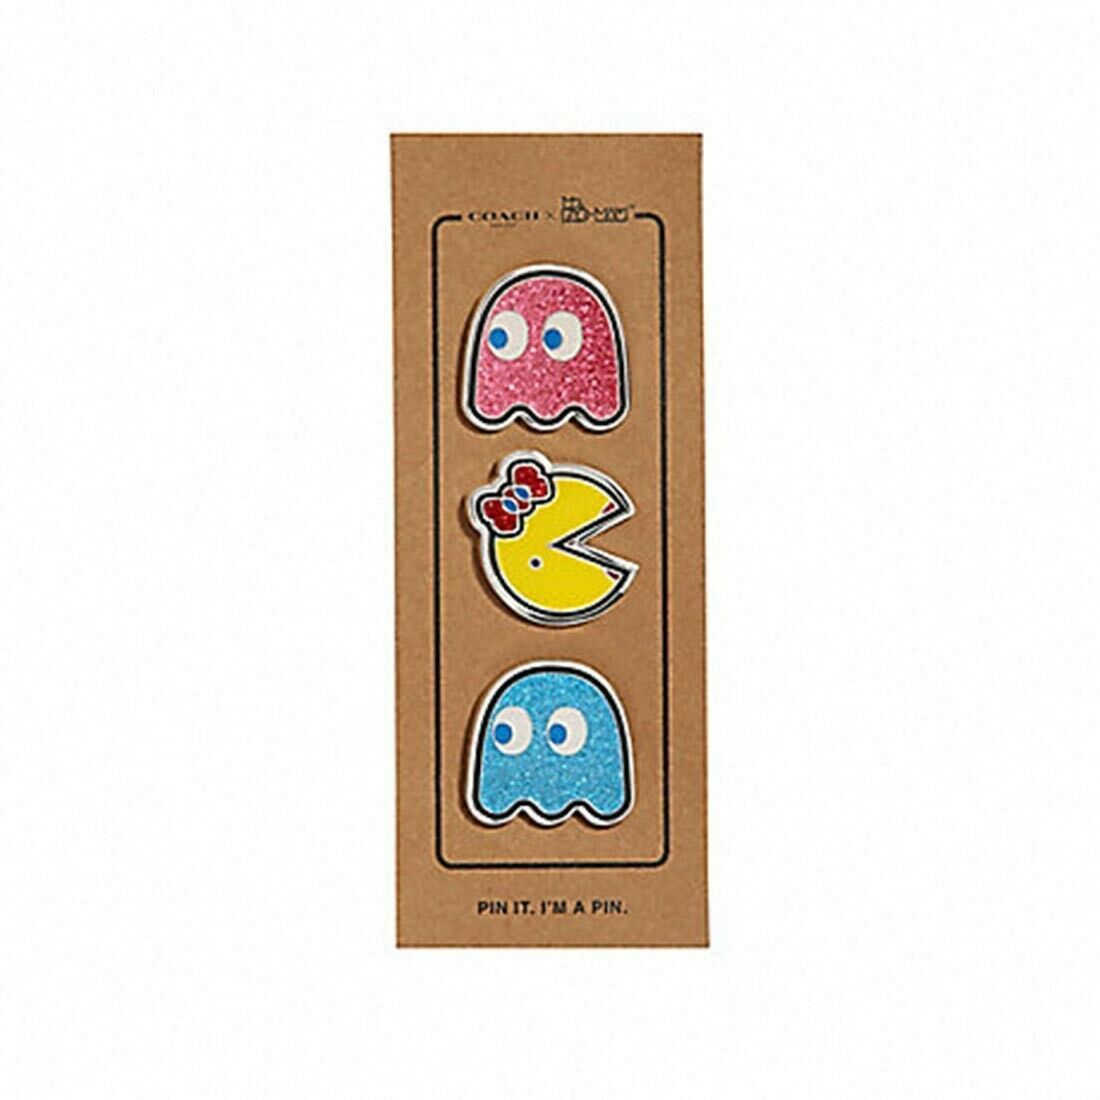 NWT COACH Pac-Man Pin Set Multi Color Set of 4 Silver Hardware Glitter F73502 - $31.68